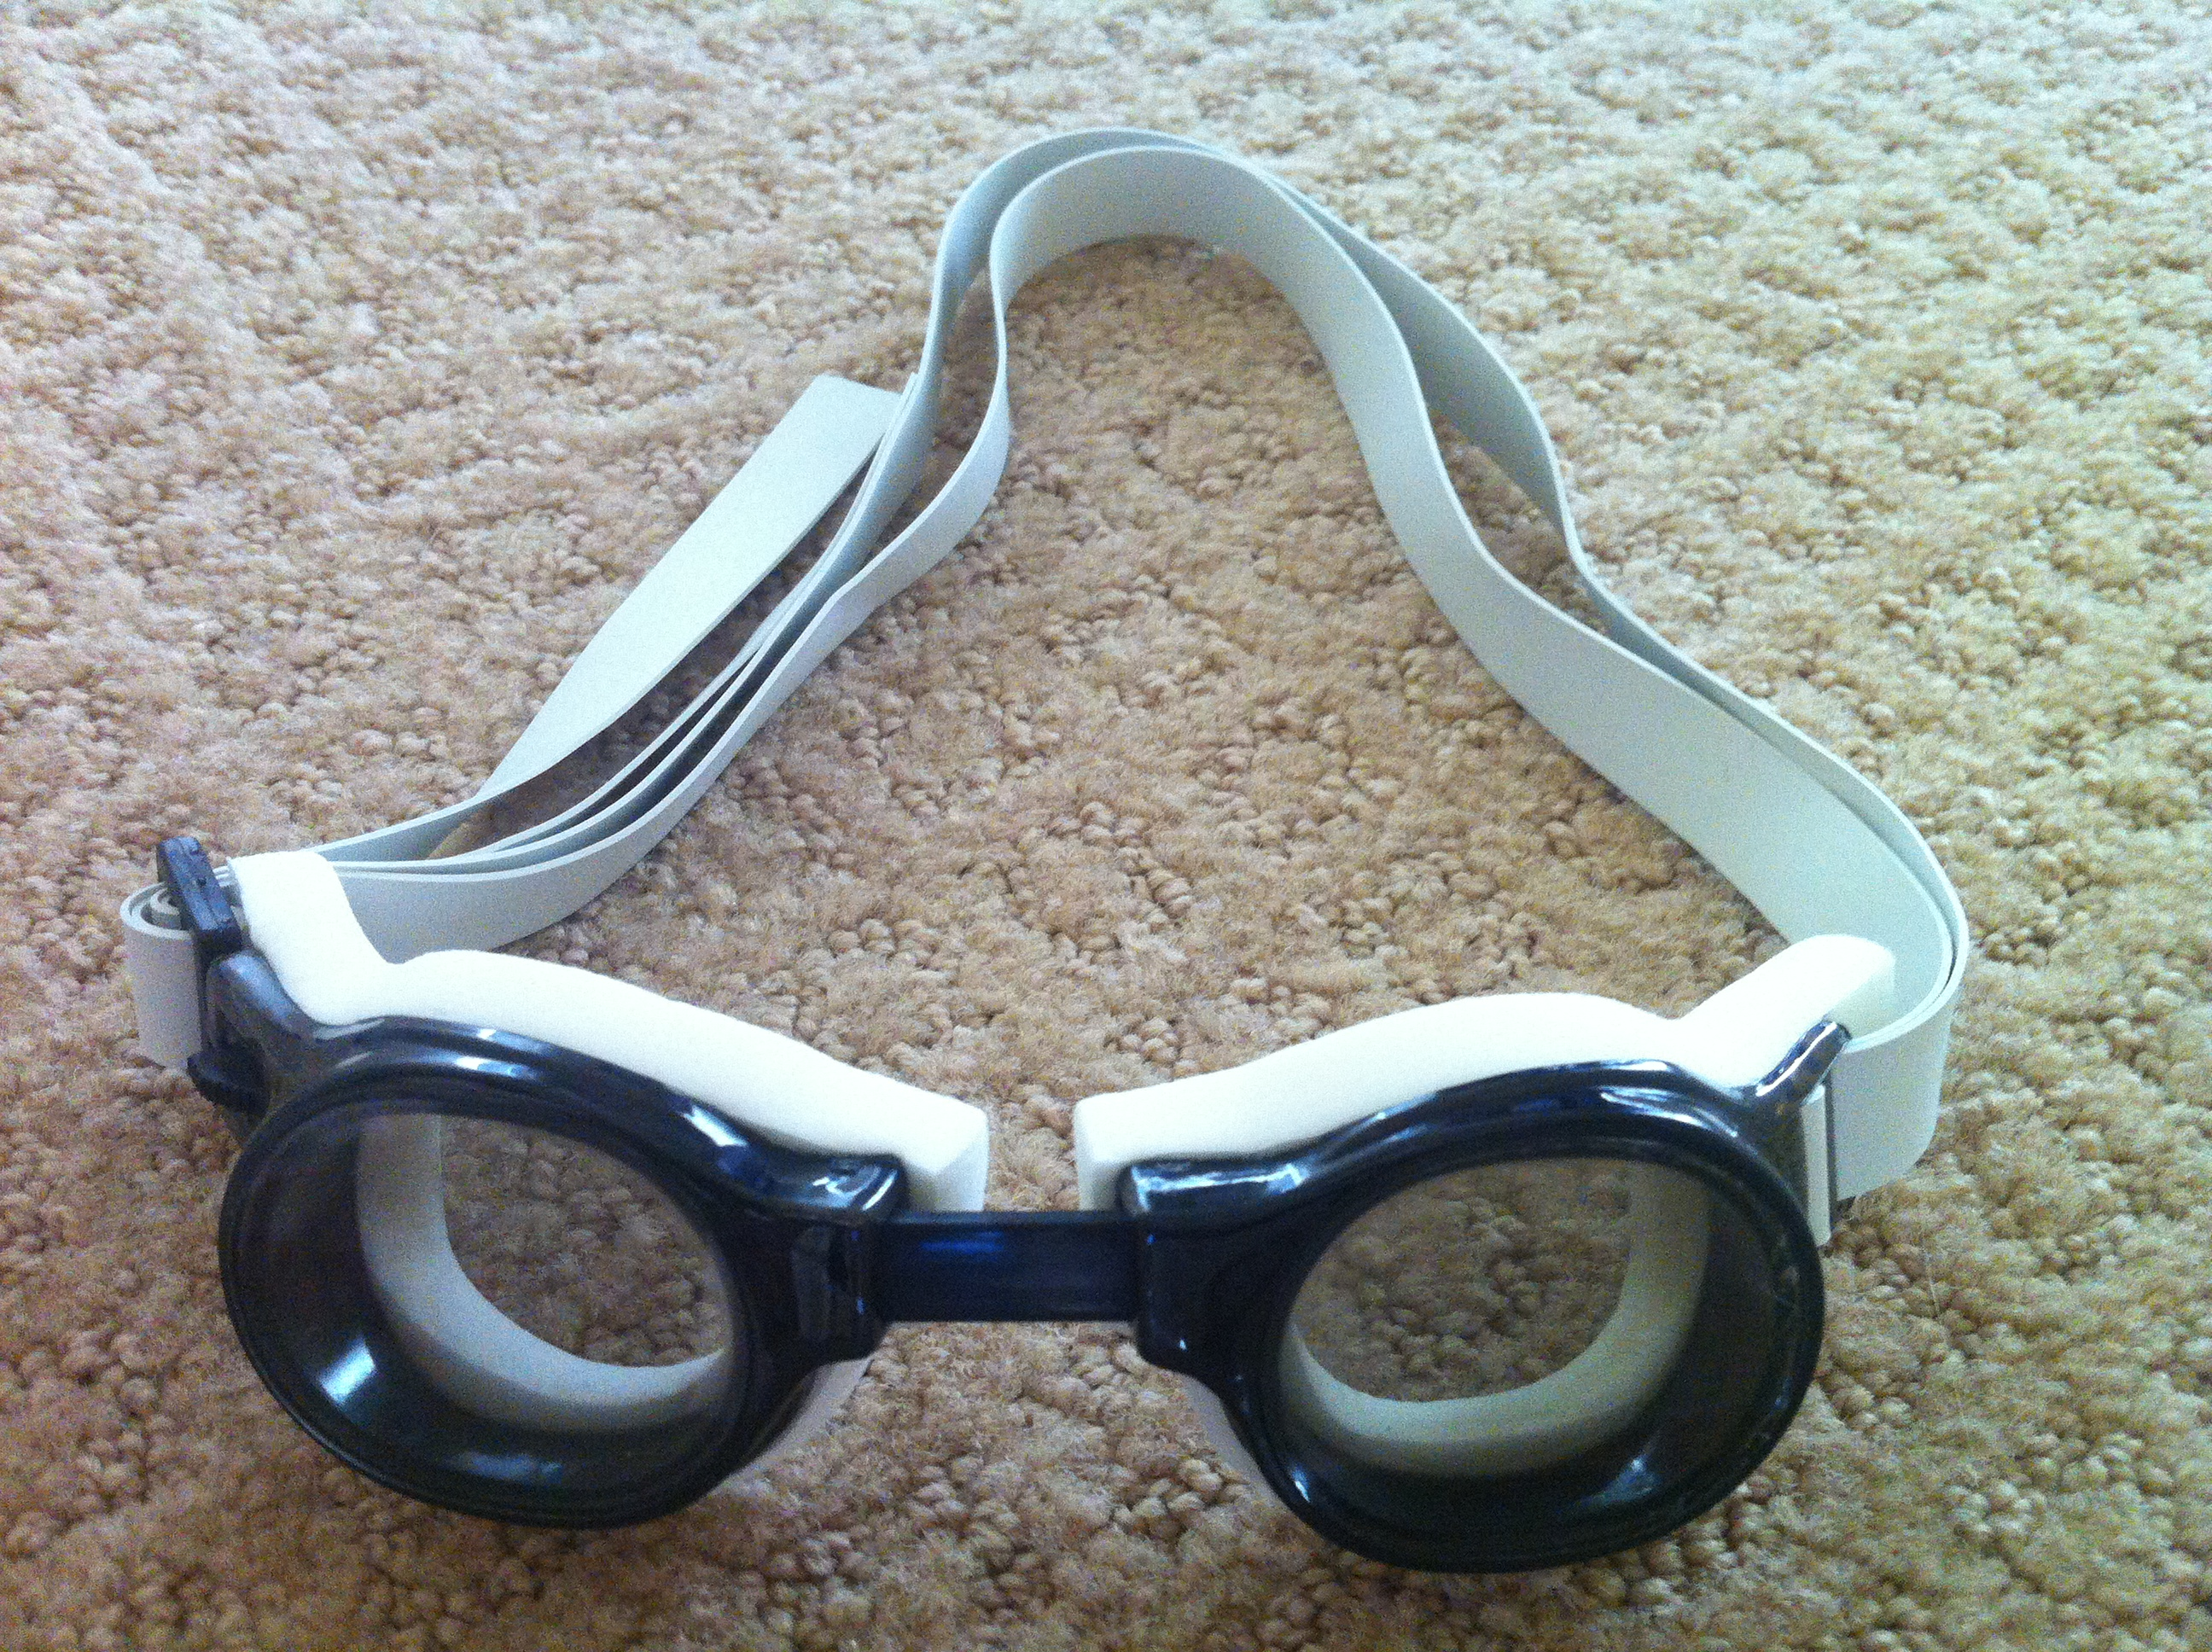 Barracuda goggles, Barracuda Medalist review, goggle review, swim